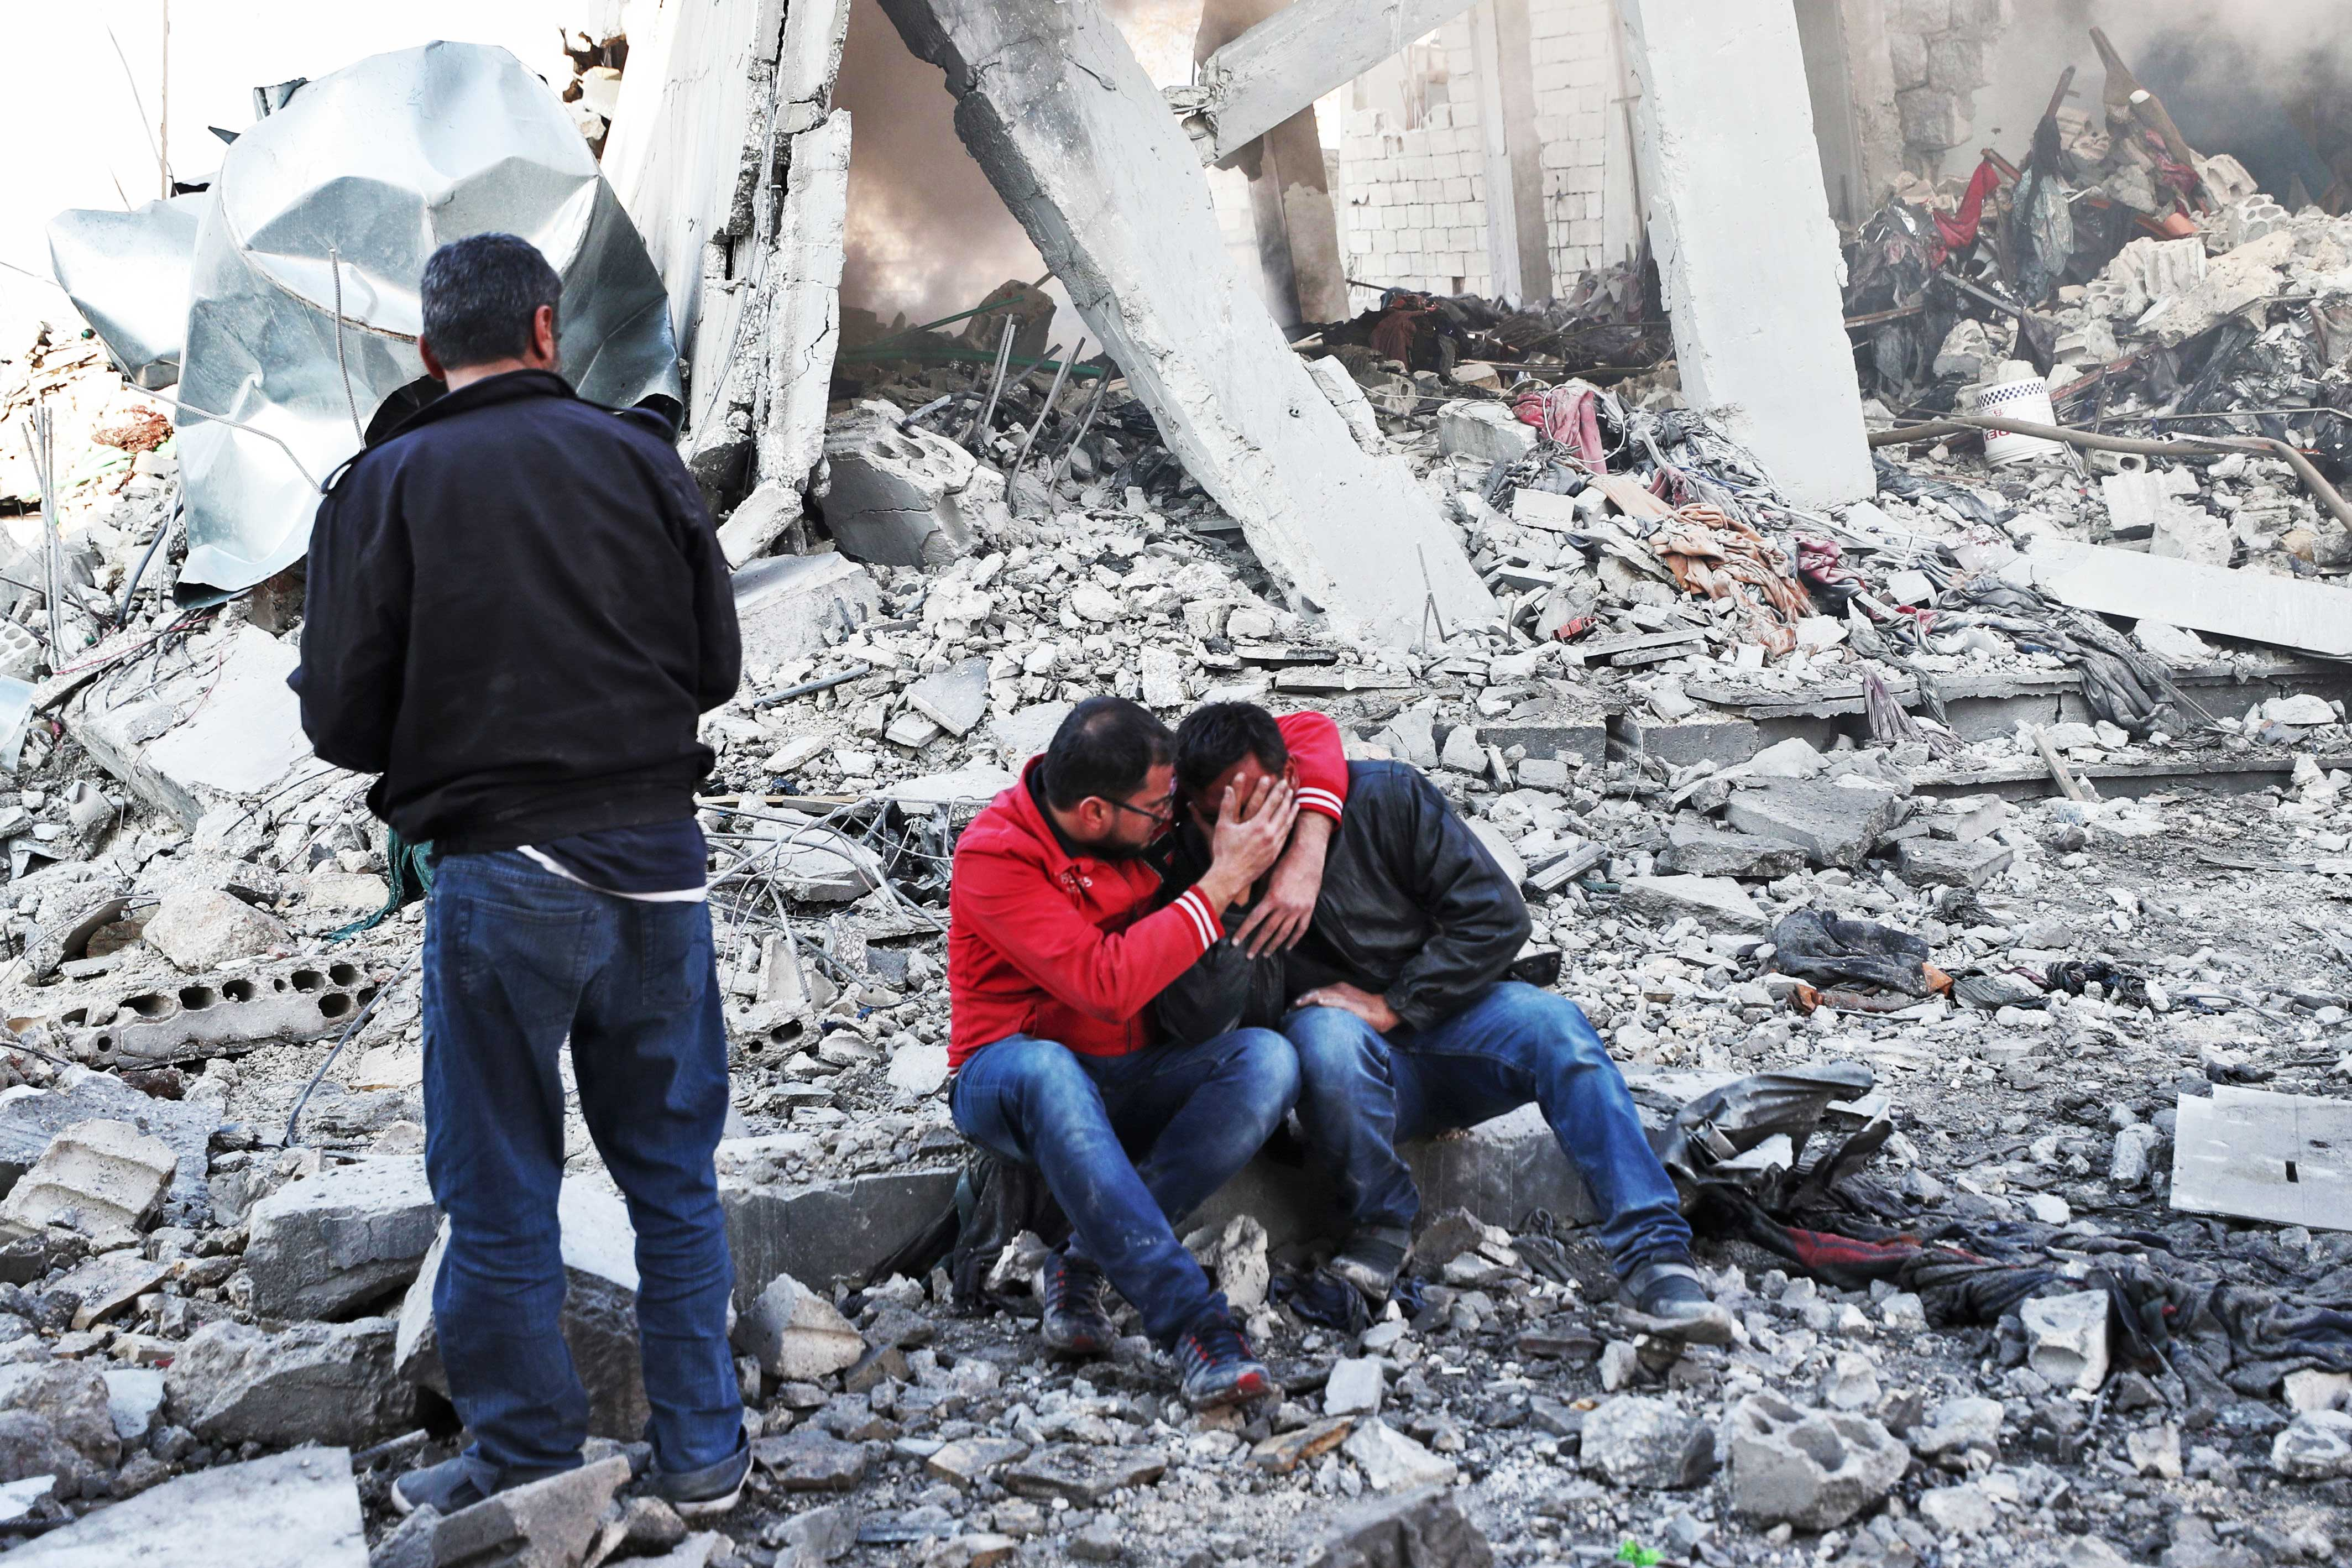 Syria's worst humanitarian catastrophe in its 9-year civil war is now unfolding